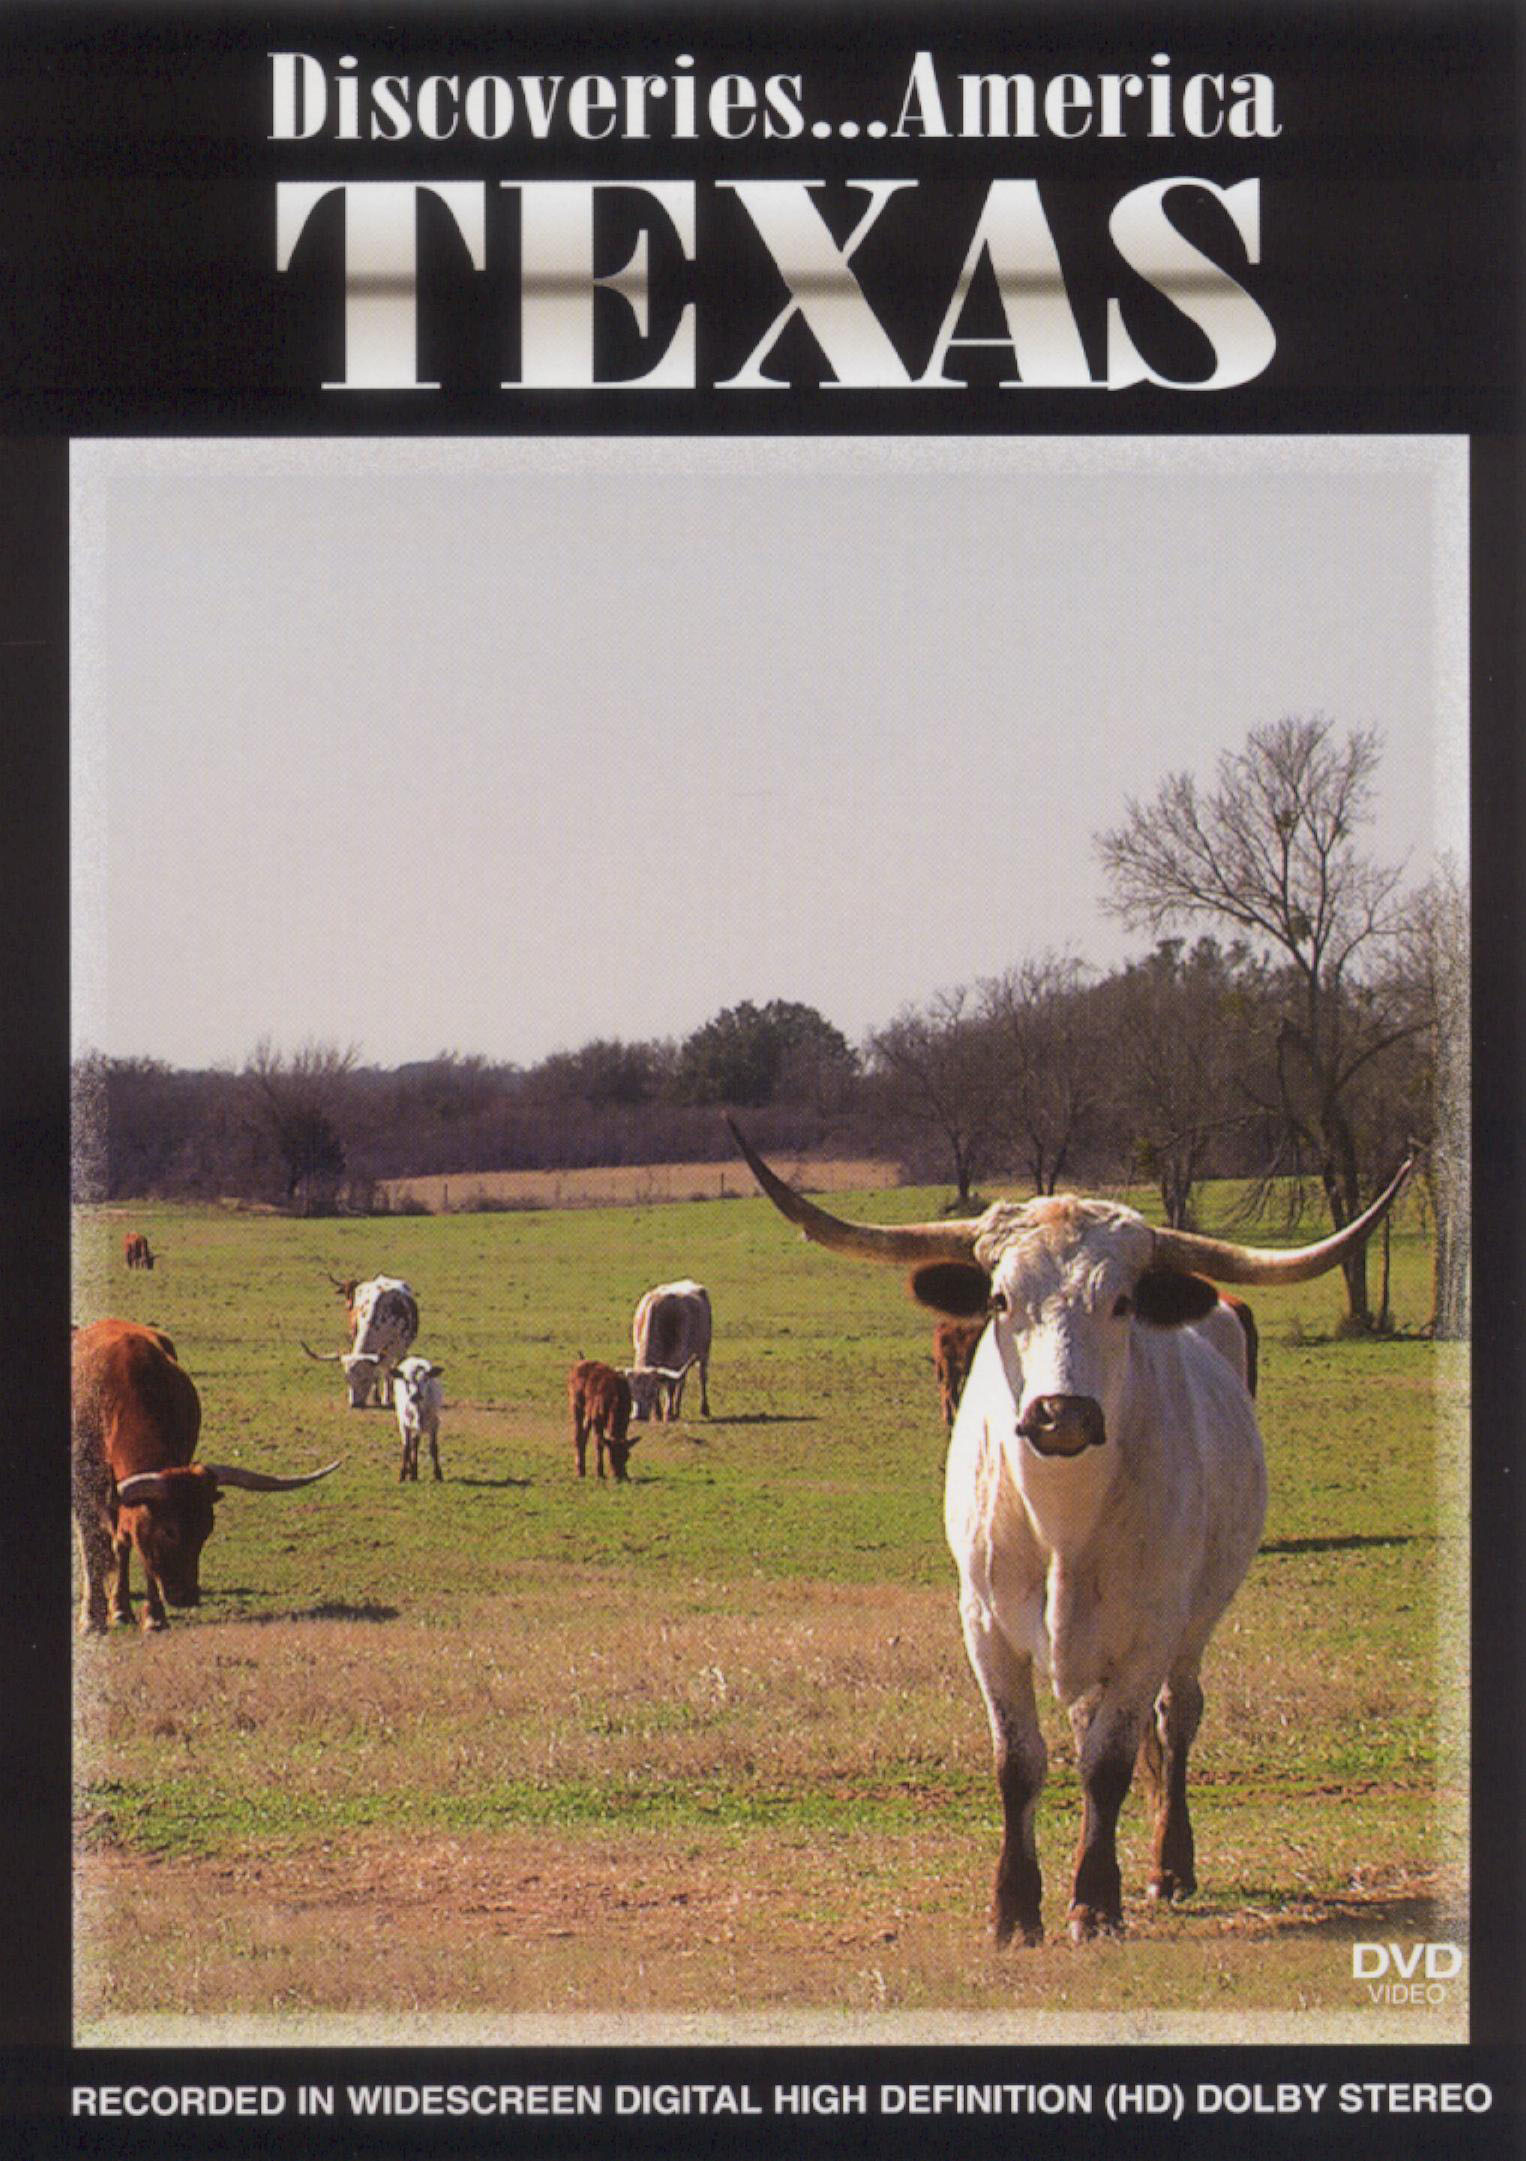 Discoveries... America: Texas